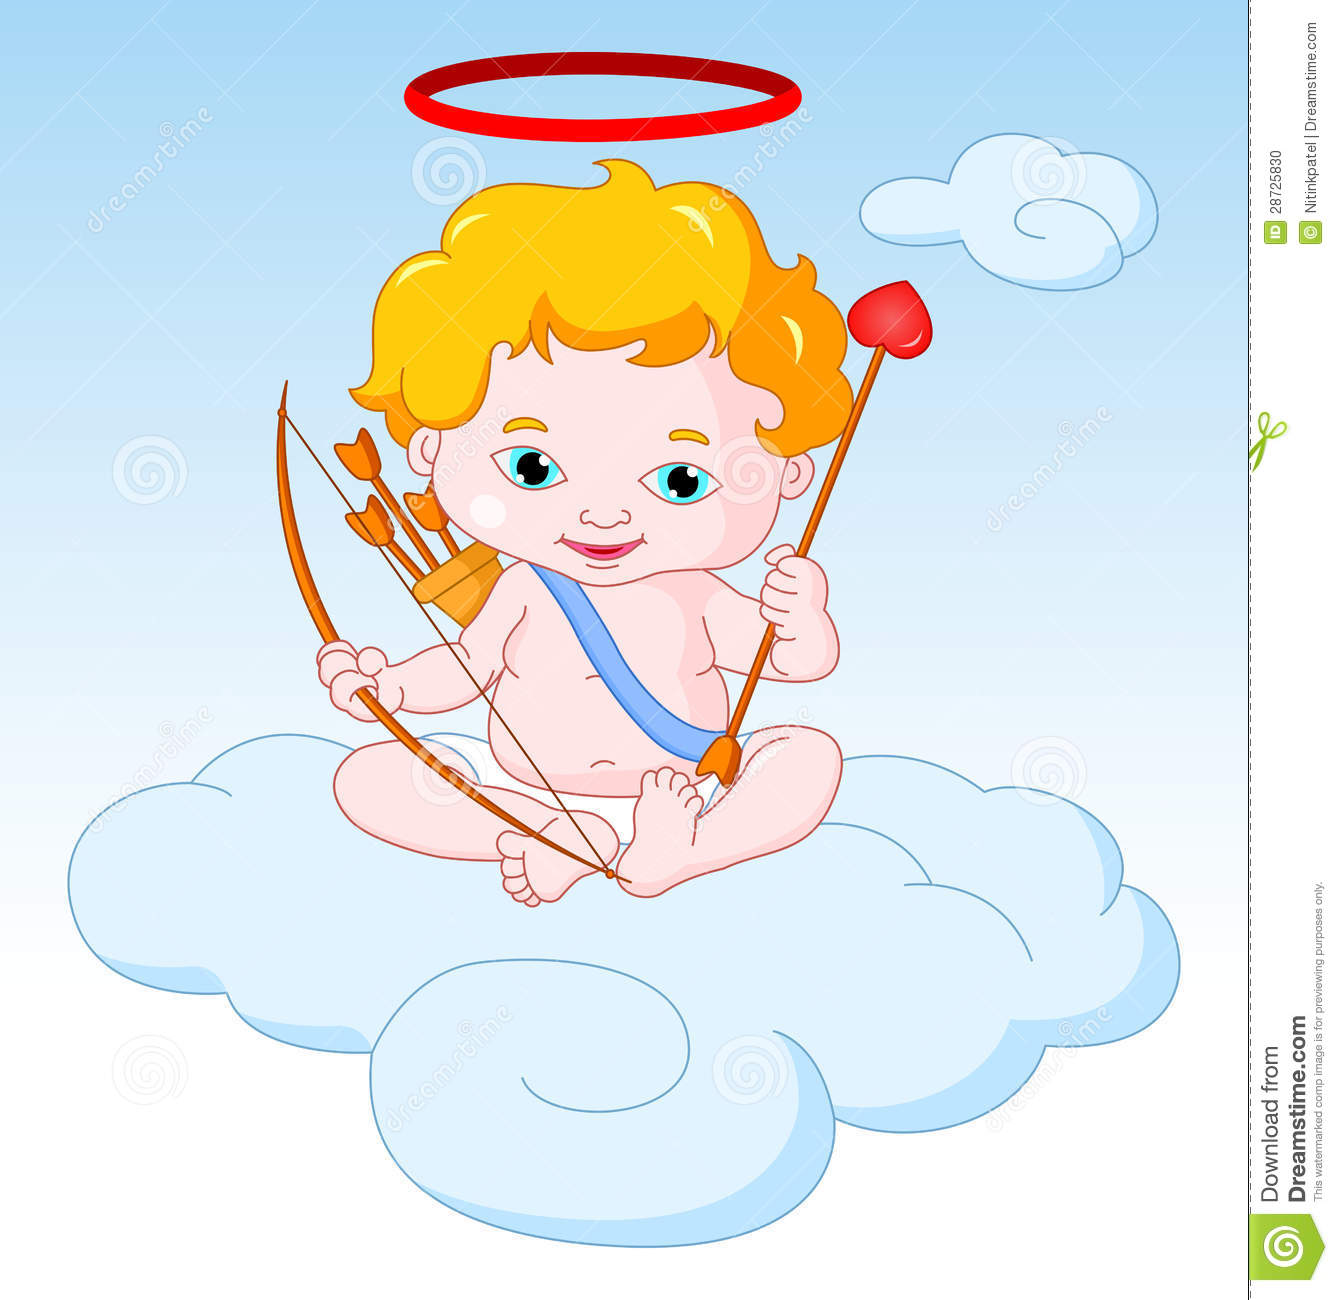 Cupid Sitting On The Cloud With Bow And Arrow Stock Photo - Image ...